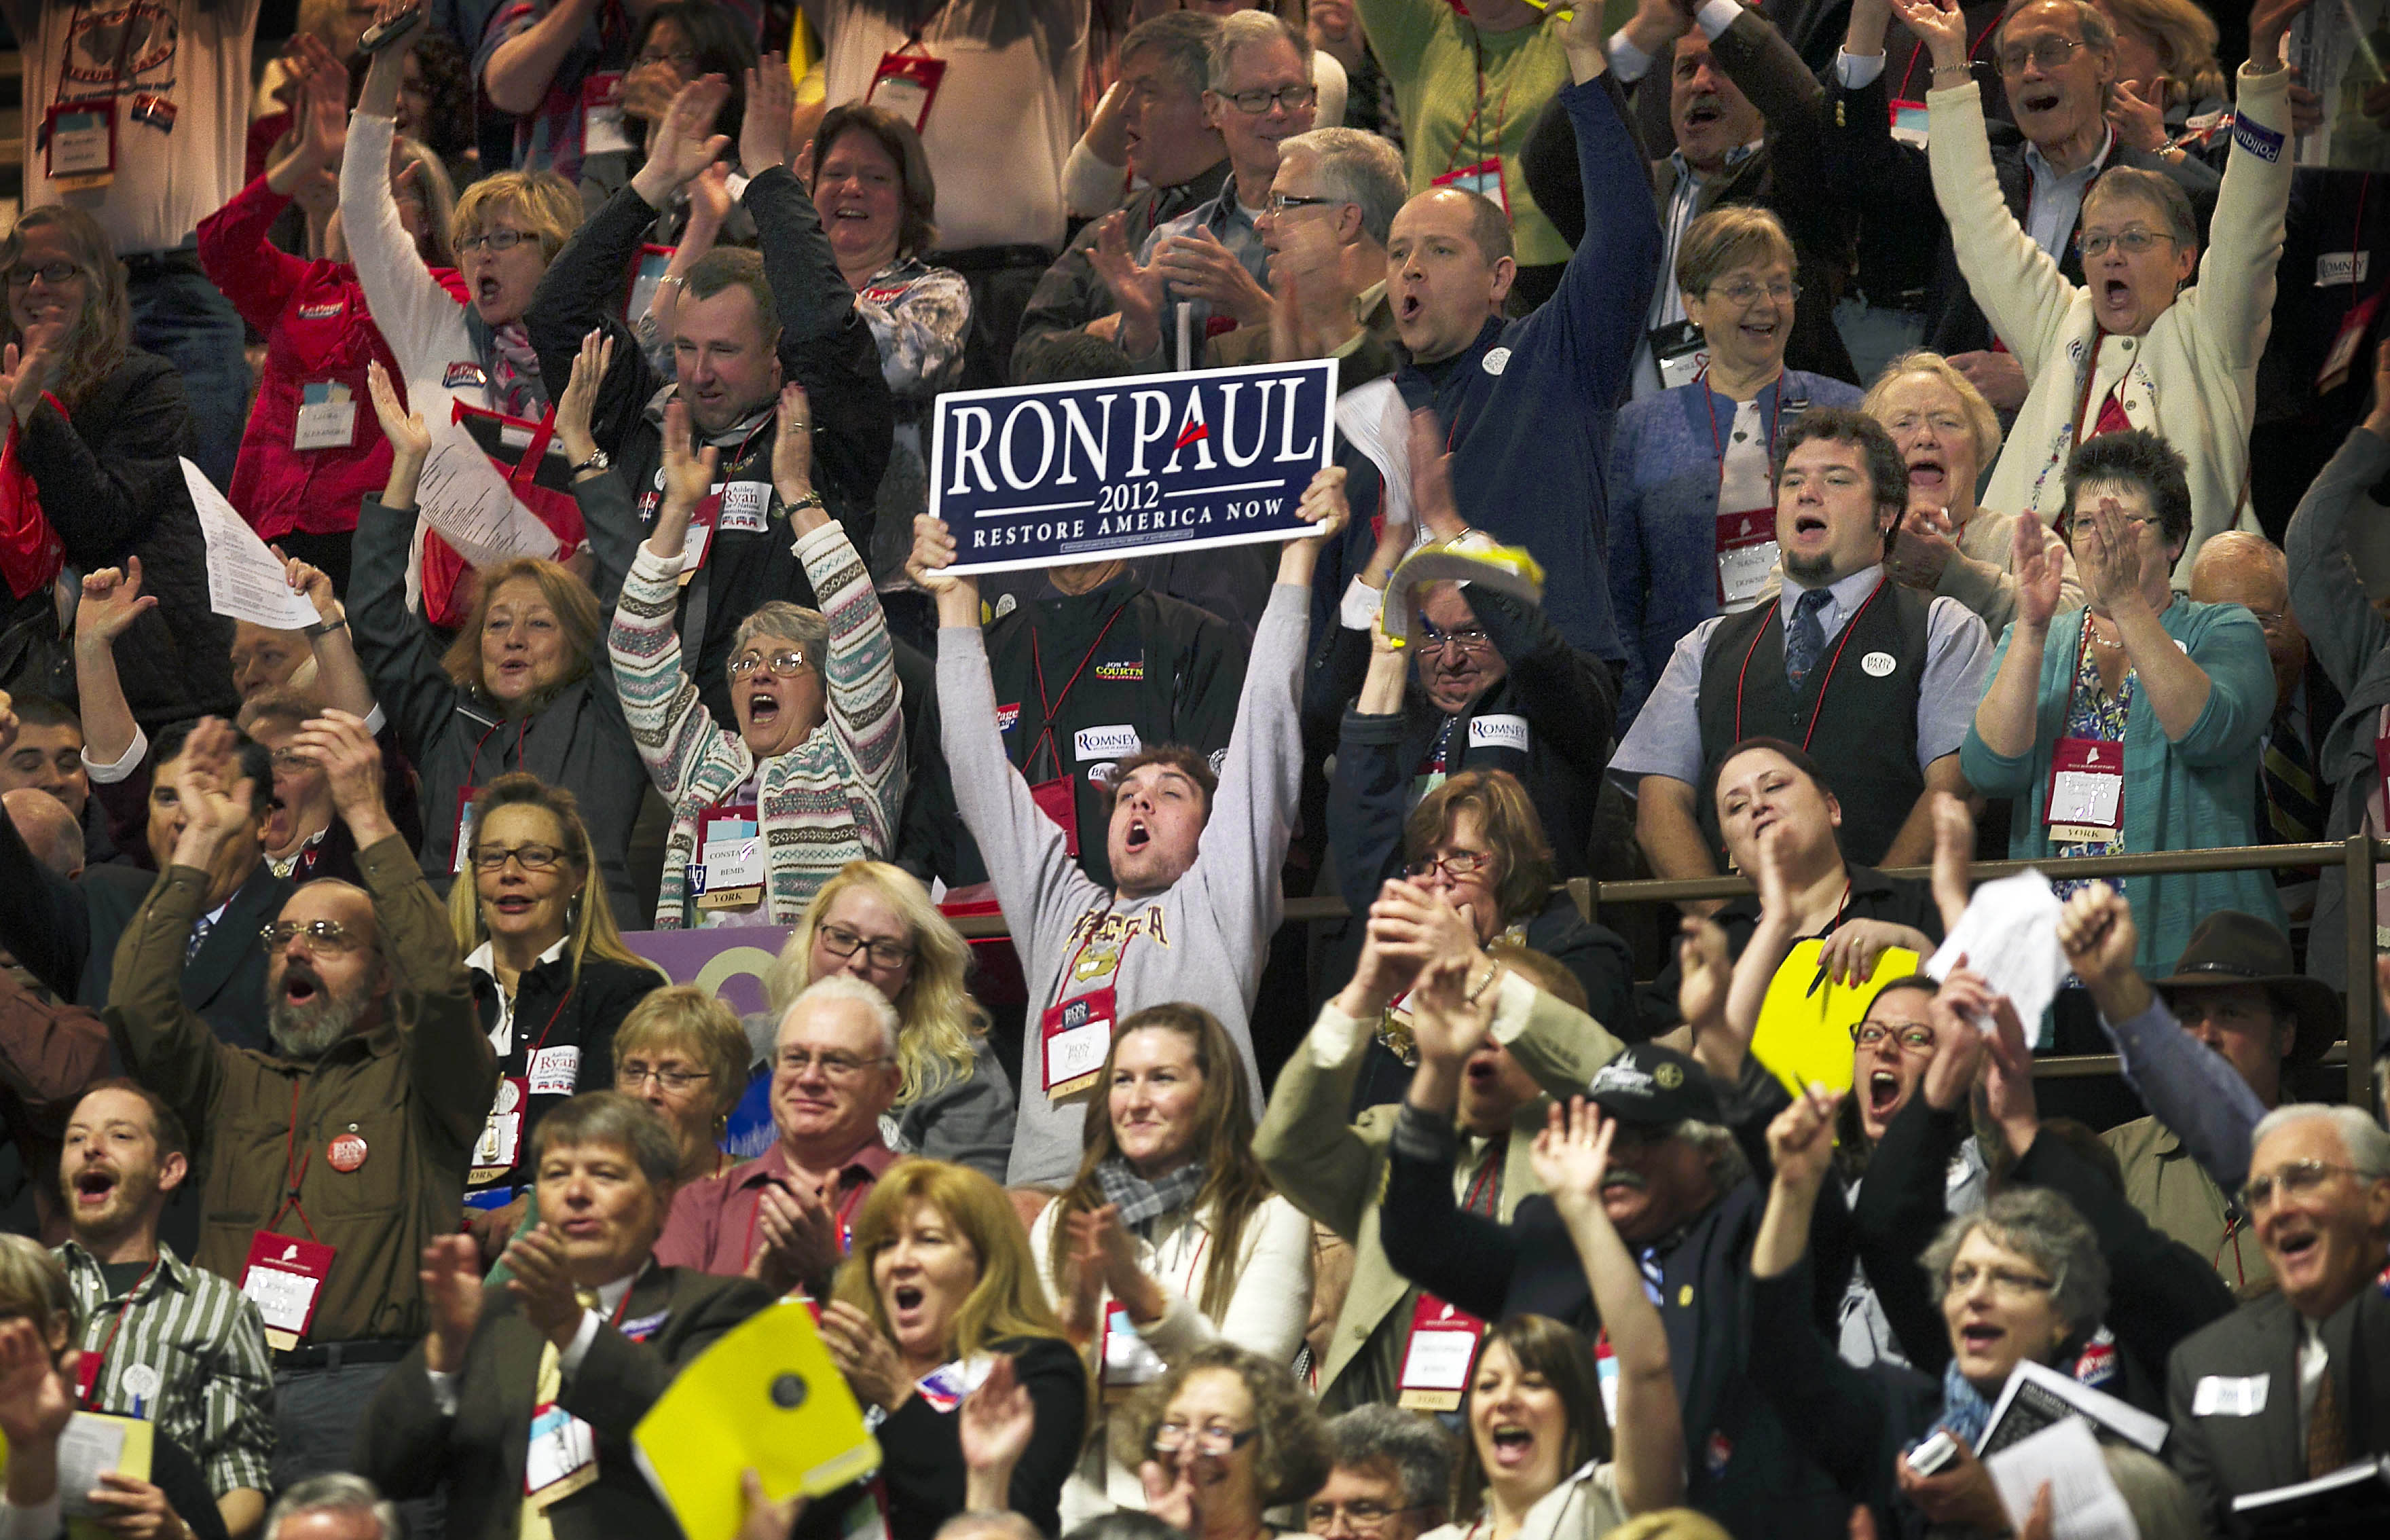 Delegates cheer at the Maine Republican Convention at the Augusta Civic Center in Augusta, Maine, Saturday, May 5, 2012. (AP Photo/Robert F. Bukaty)